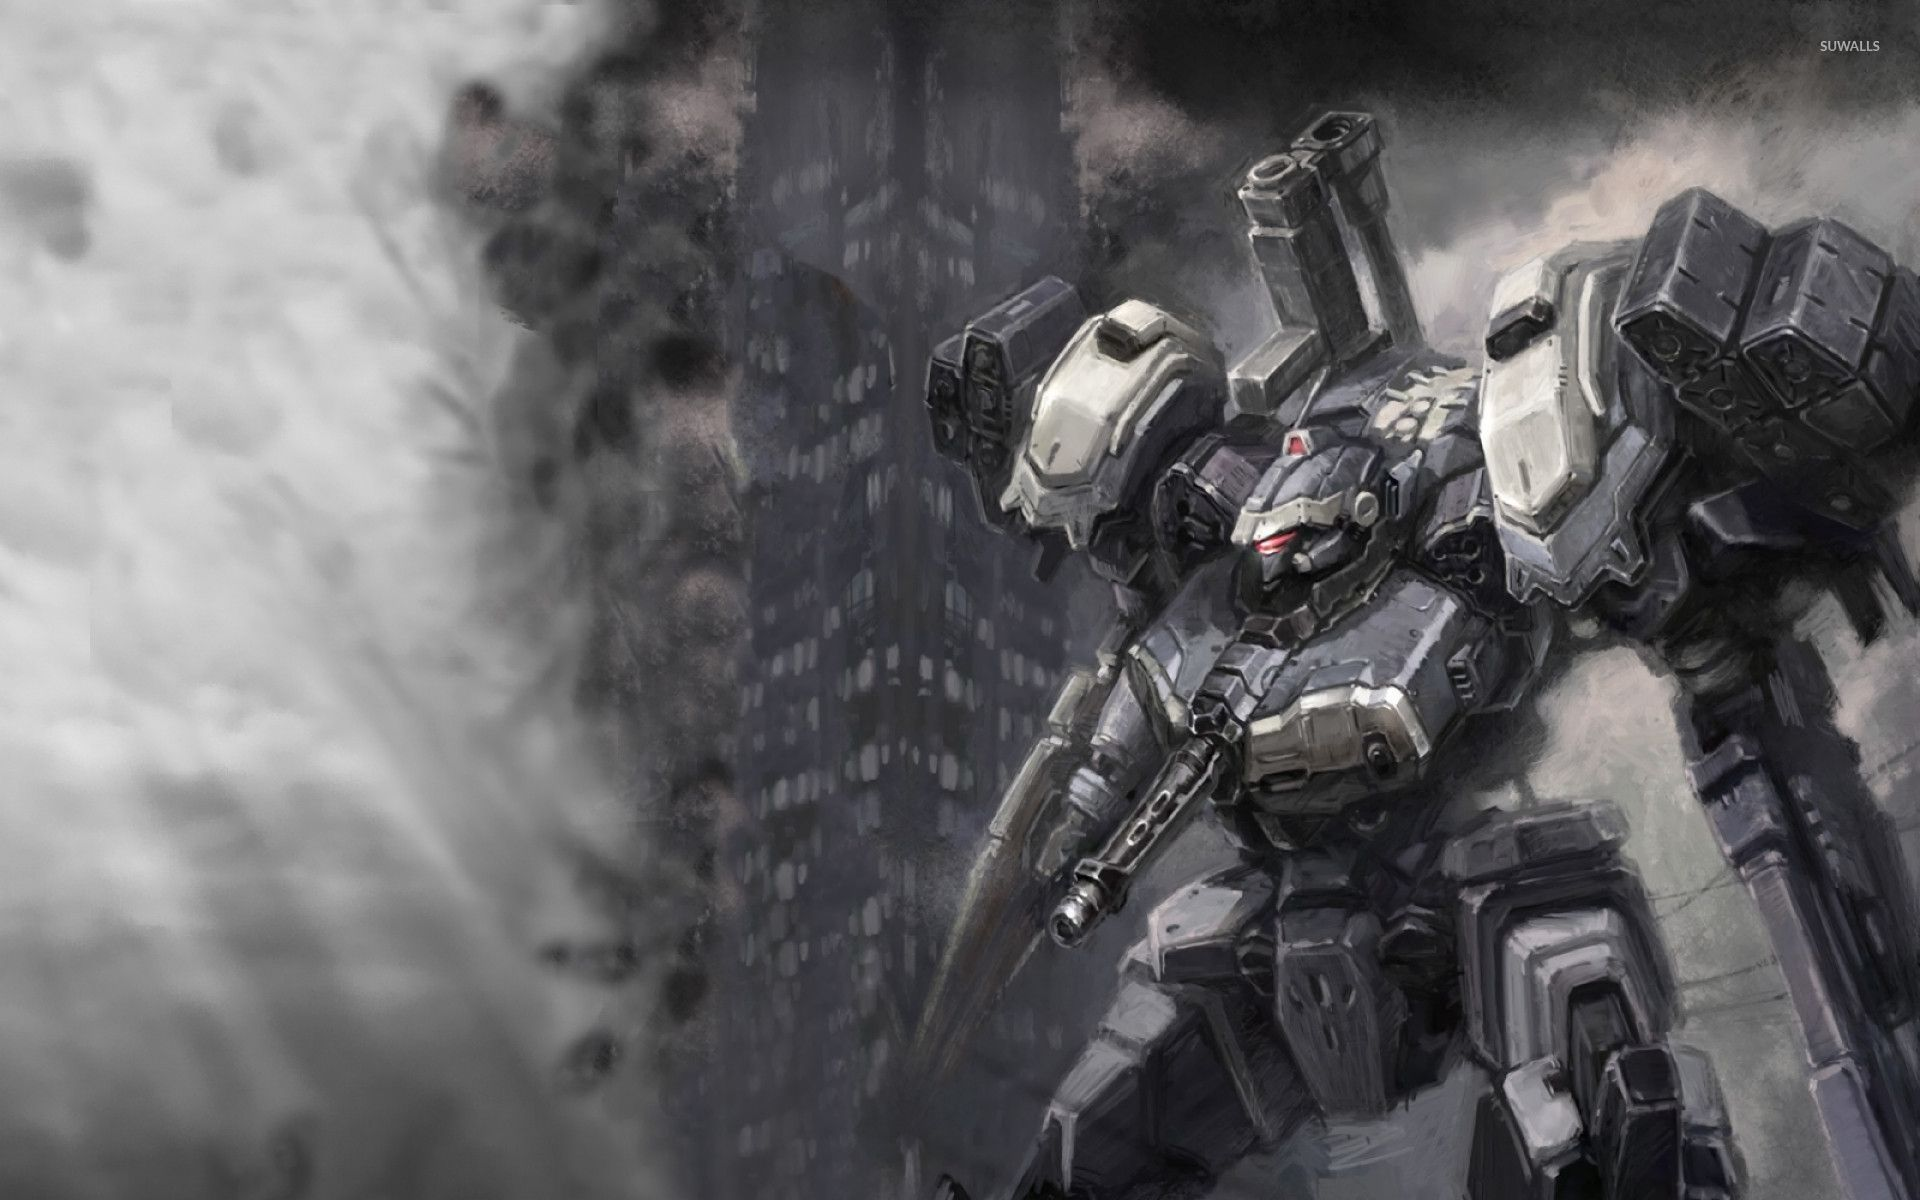 Armored core 3 wallpaper game wallpapers 29404 armored core 3 wallpaper voltagebd Images